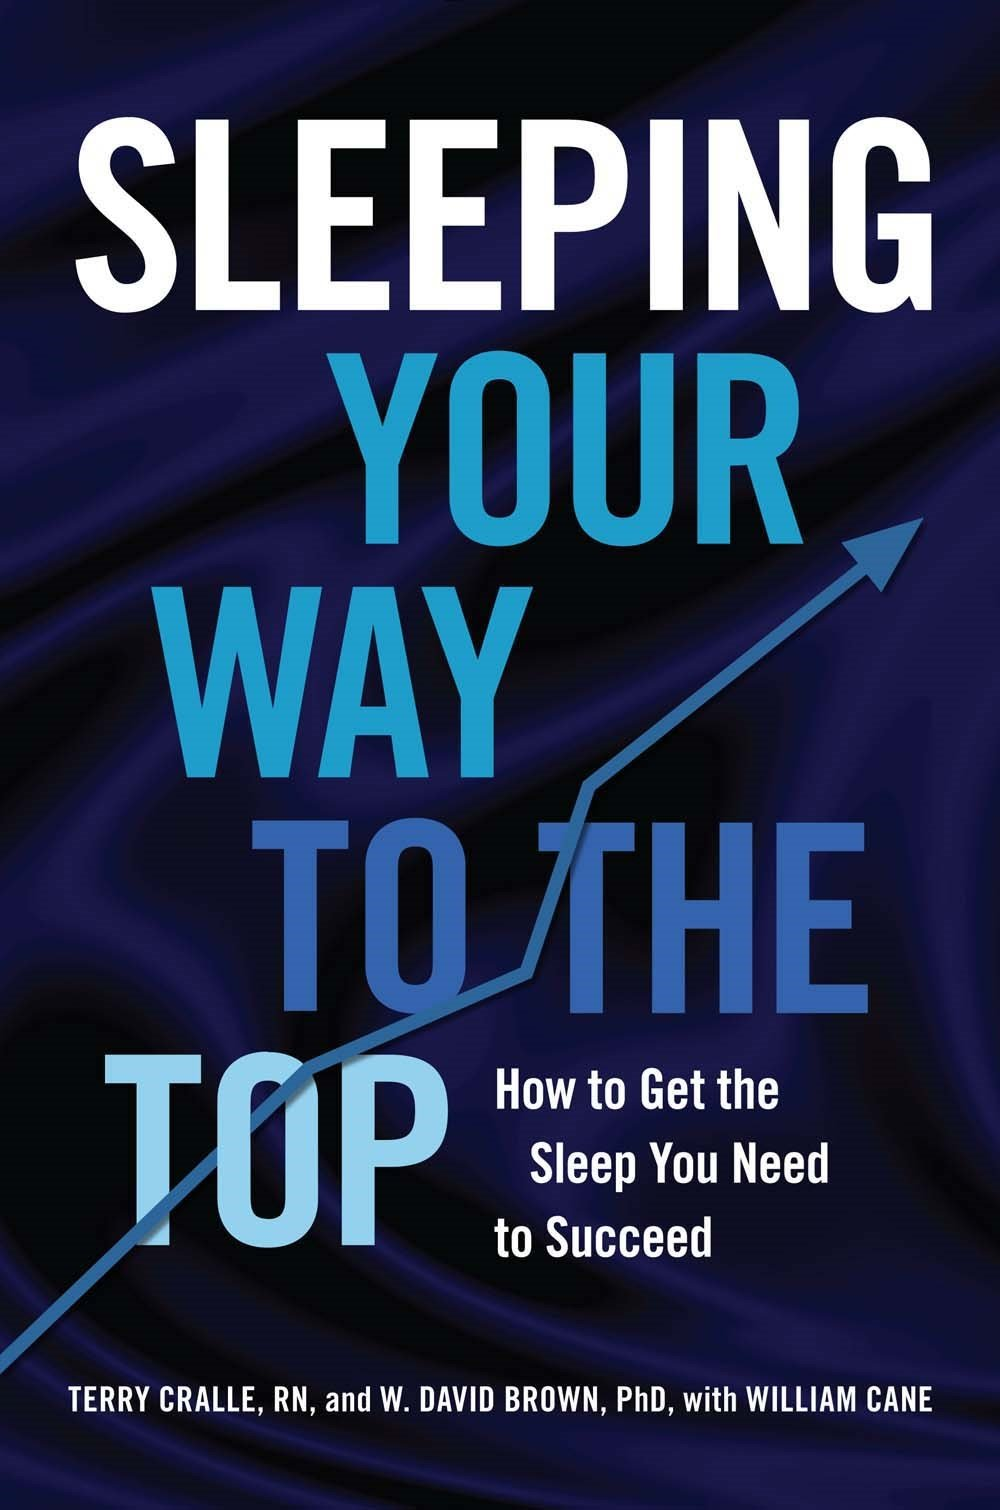 Sleeping With Your Smartphone Pdf